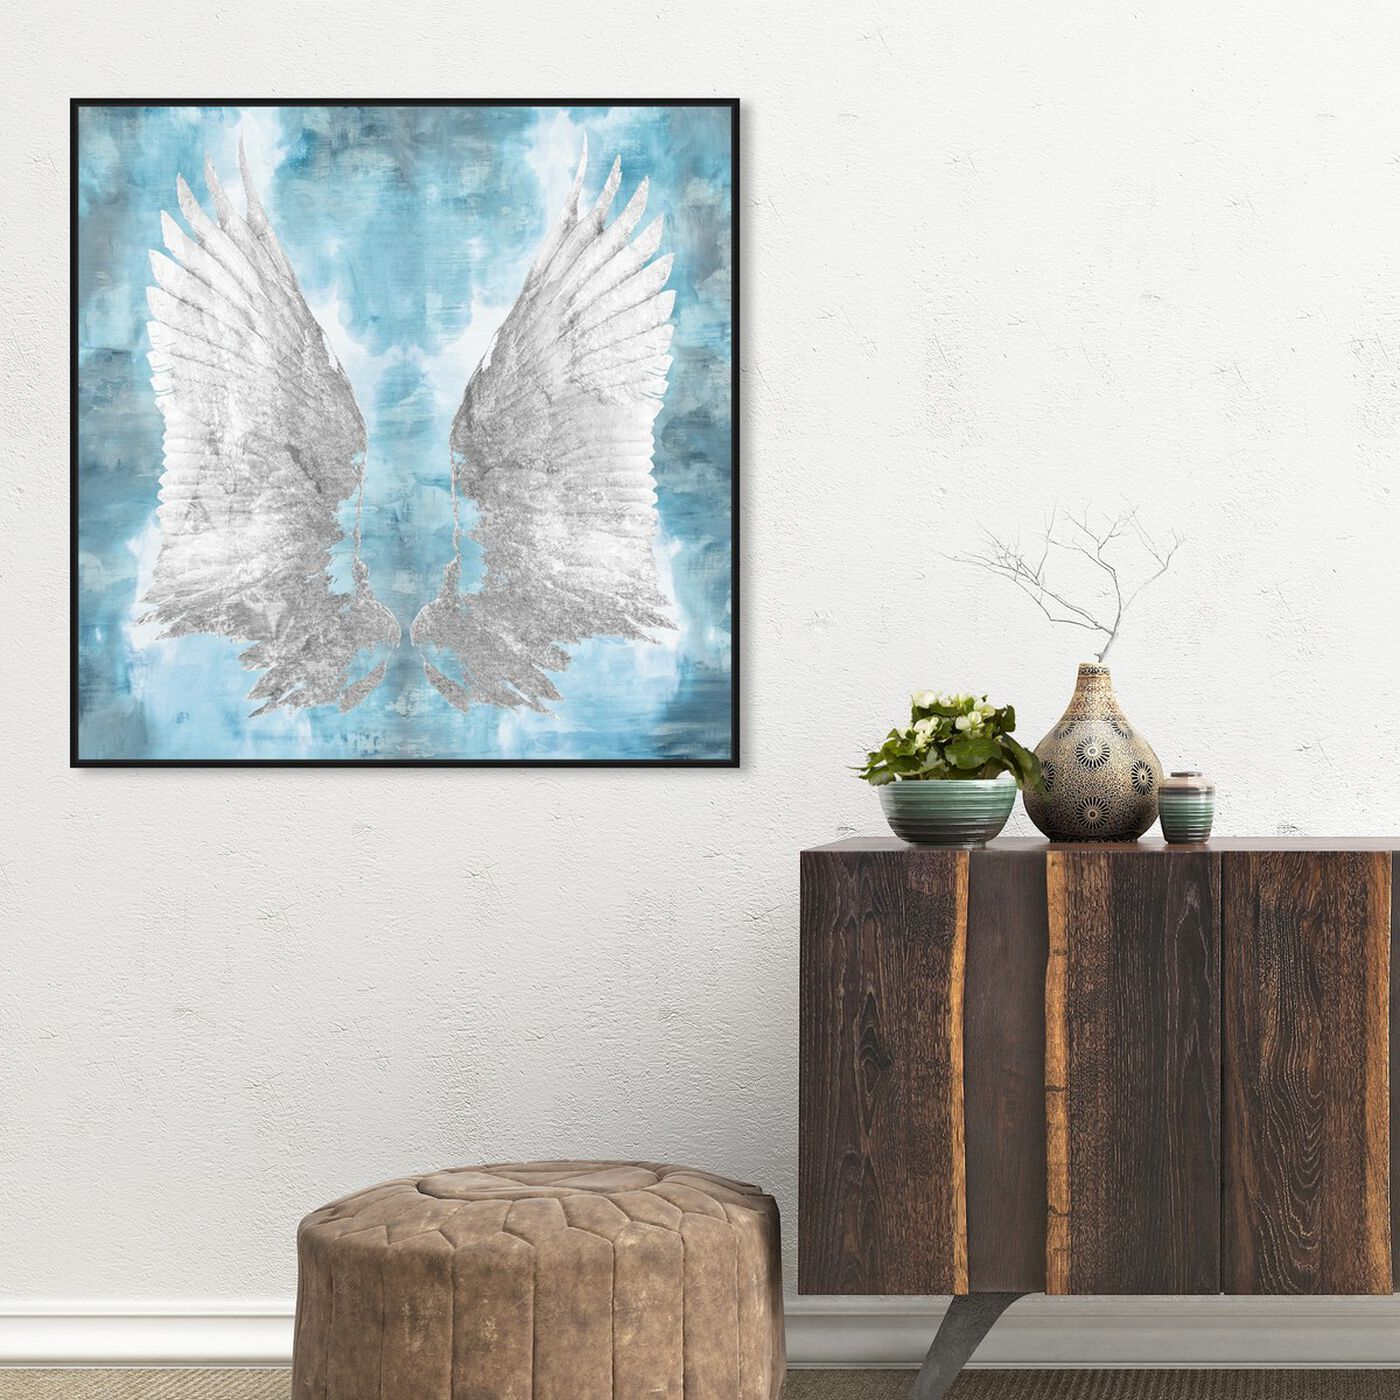 Hanging view of My Turquoise Wings featuring fashion and glam and feathers art.